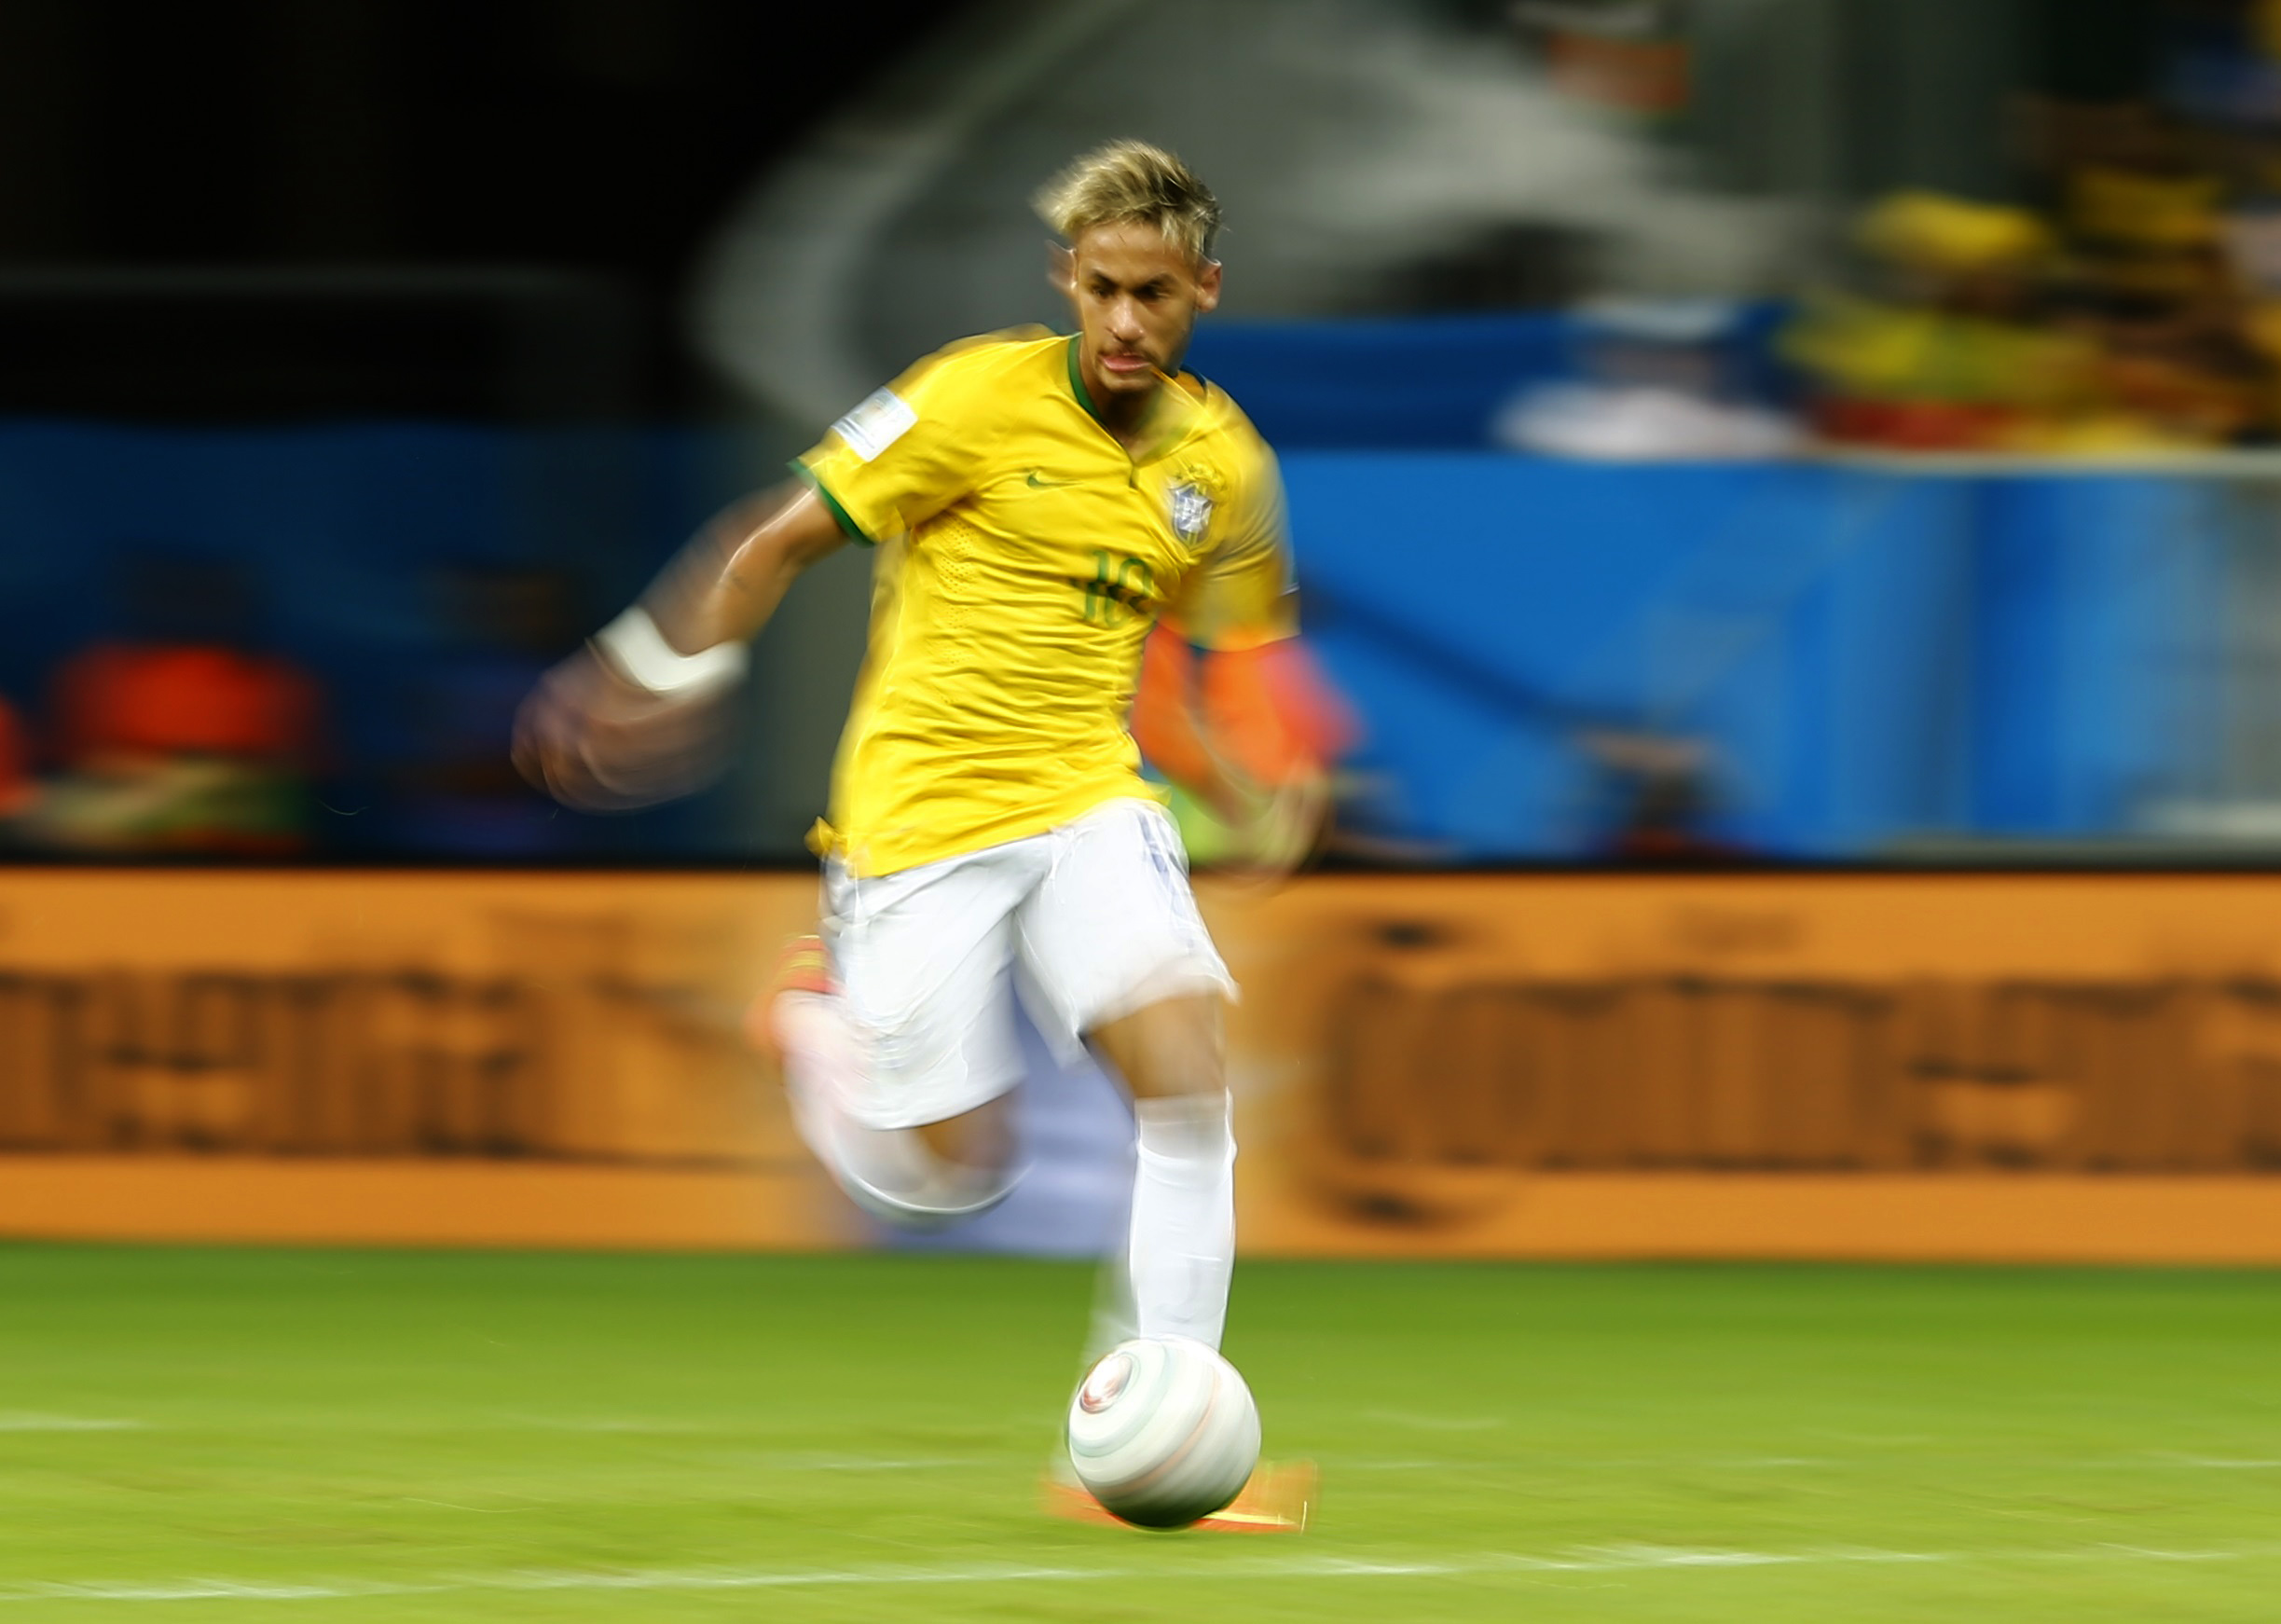 Brazil vs chile betting previews pennsylvania sports betting apps